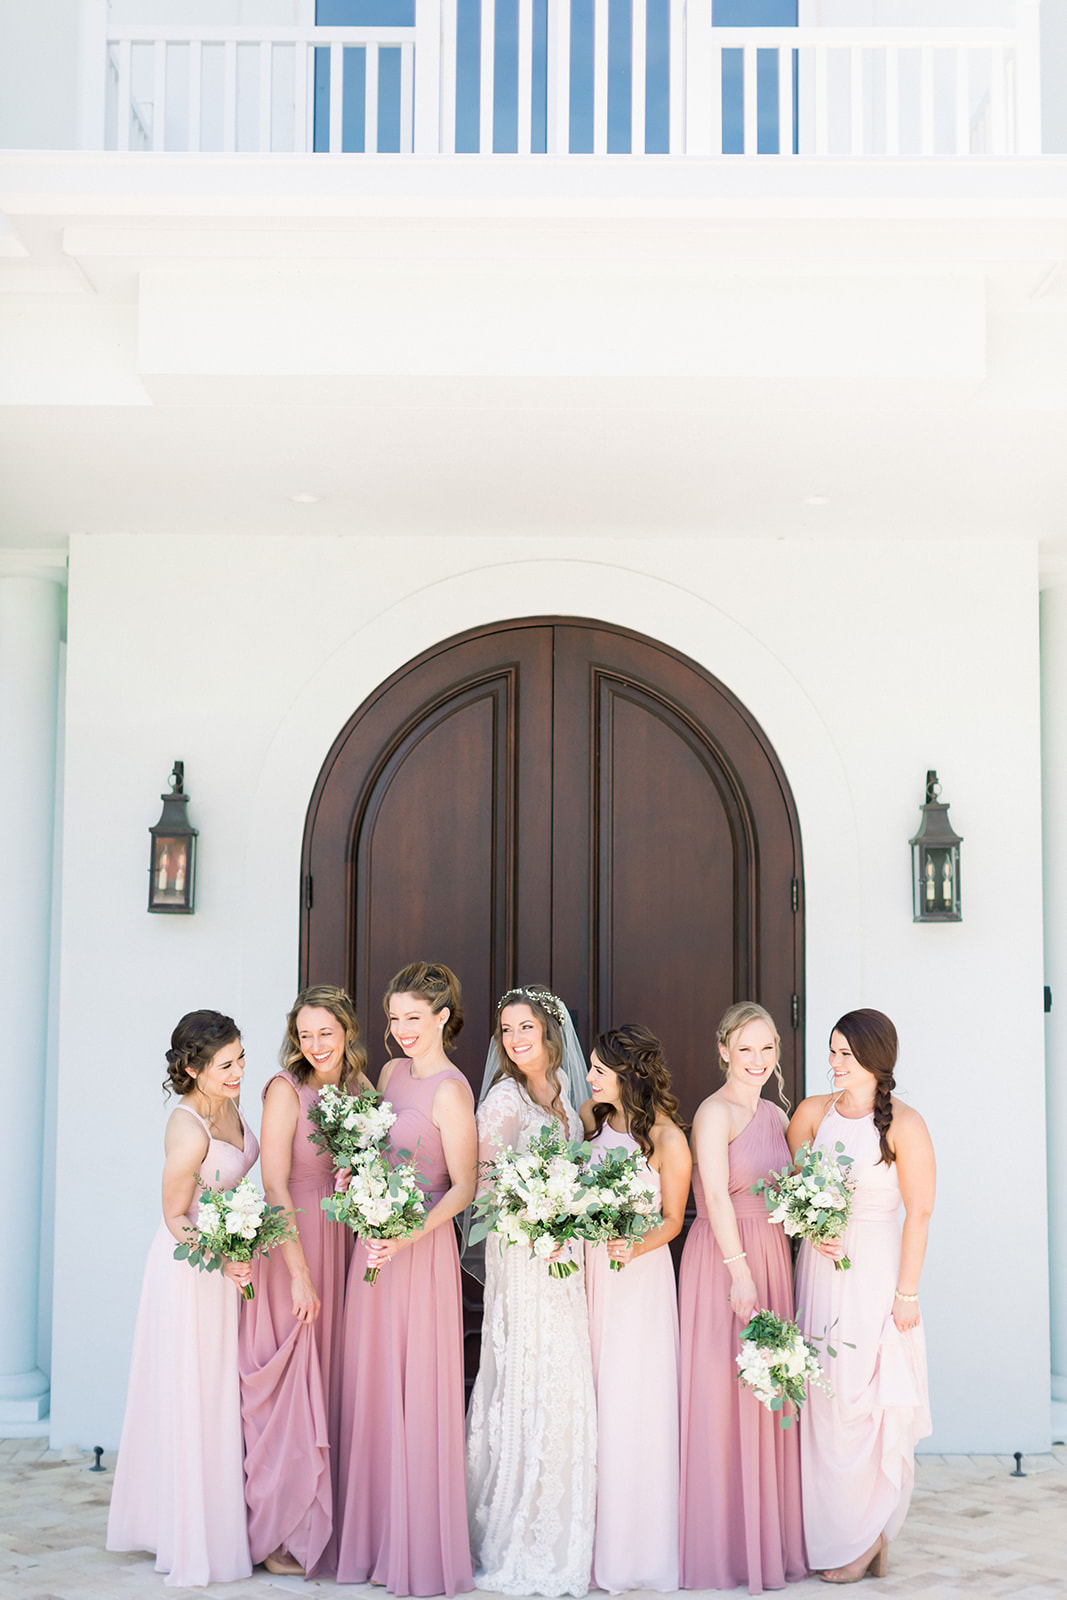 Florida Boho Inspired Bride and Bridesmaids Portrait, Wearing Mix and Match Blush, Pink Long Dresses, Holding White Floral Bouquets with Greenery | Tampa Bay Wedding Photographers Shauna and Jordon Photography | Tampa Bay Wedding Ceremony Venue Harborside Chapel